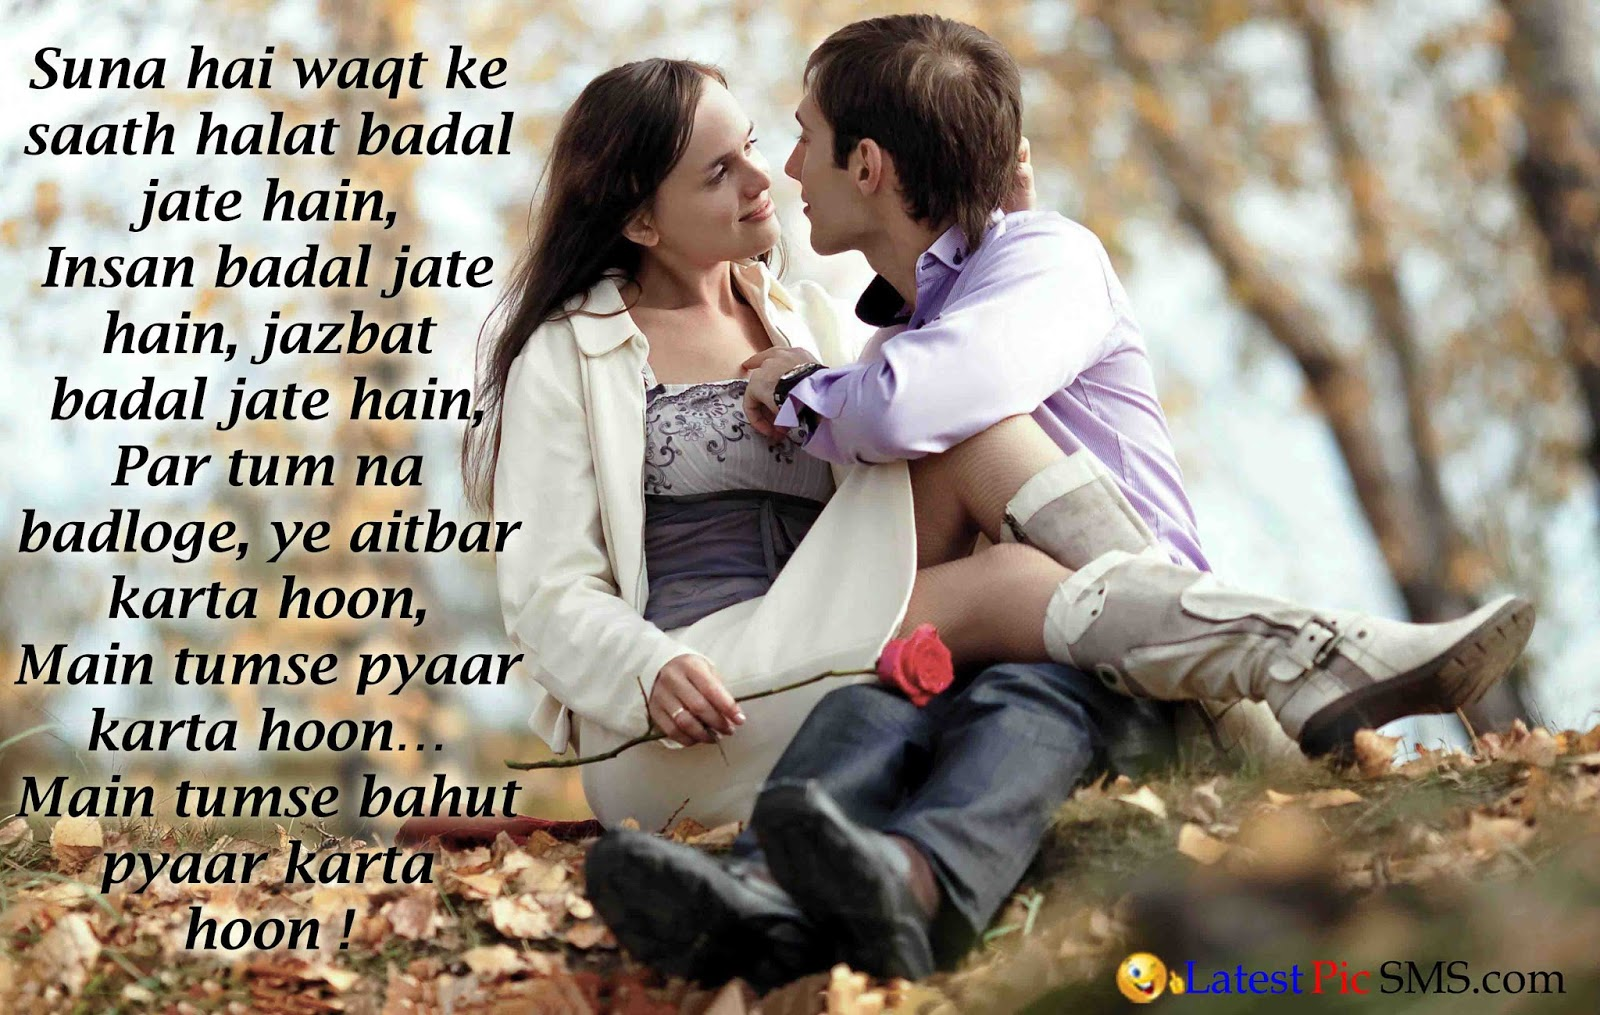 Best Love Shayari Pictures